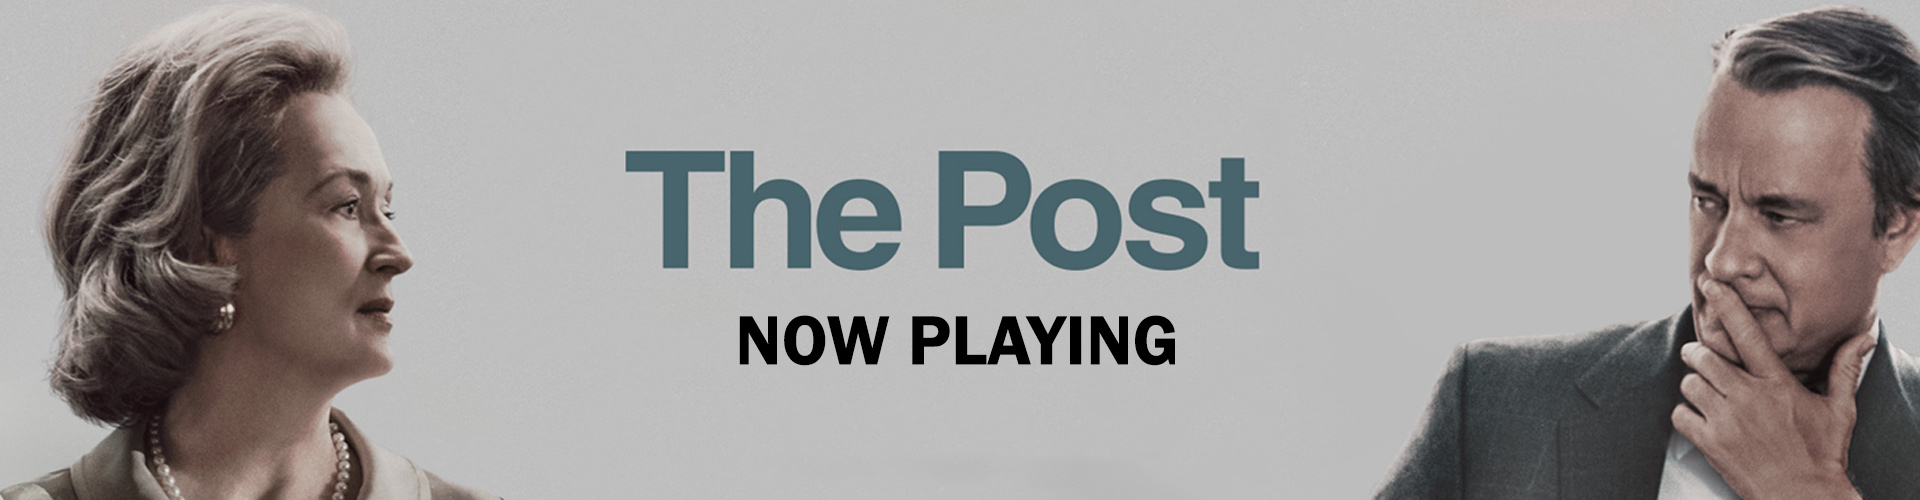 the-post-now-playing